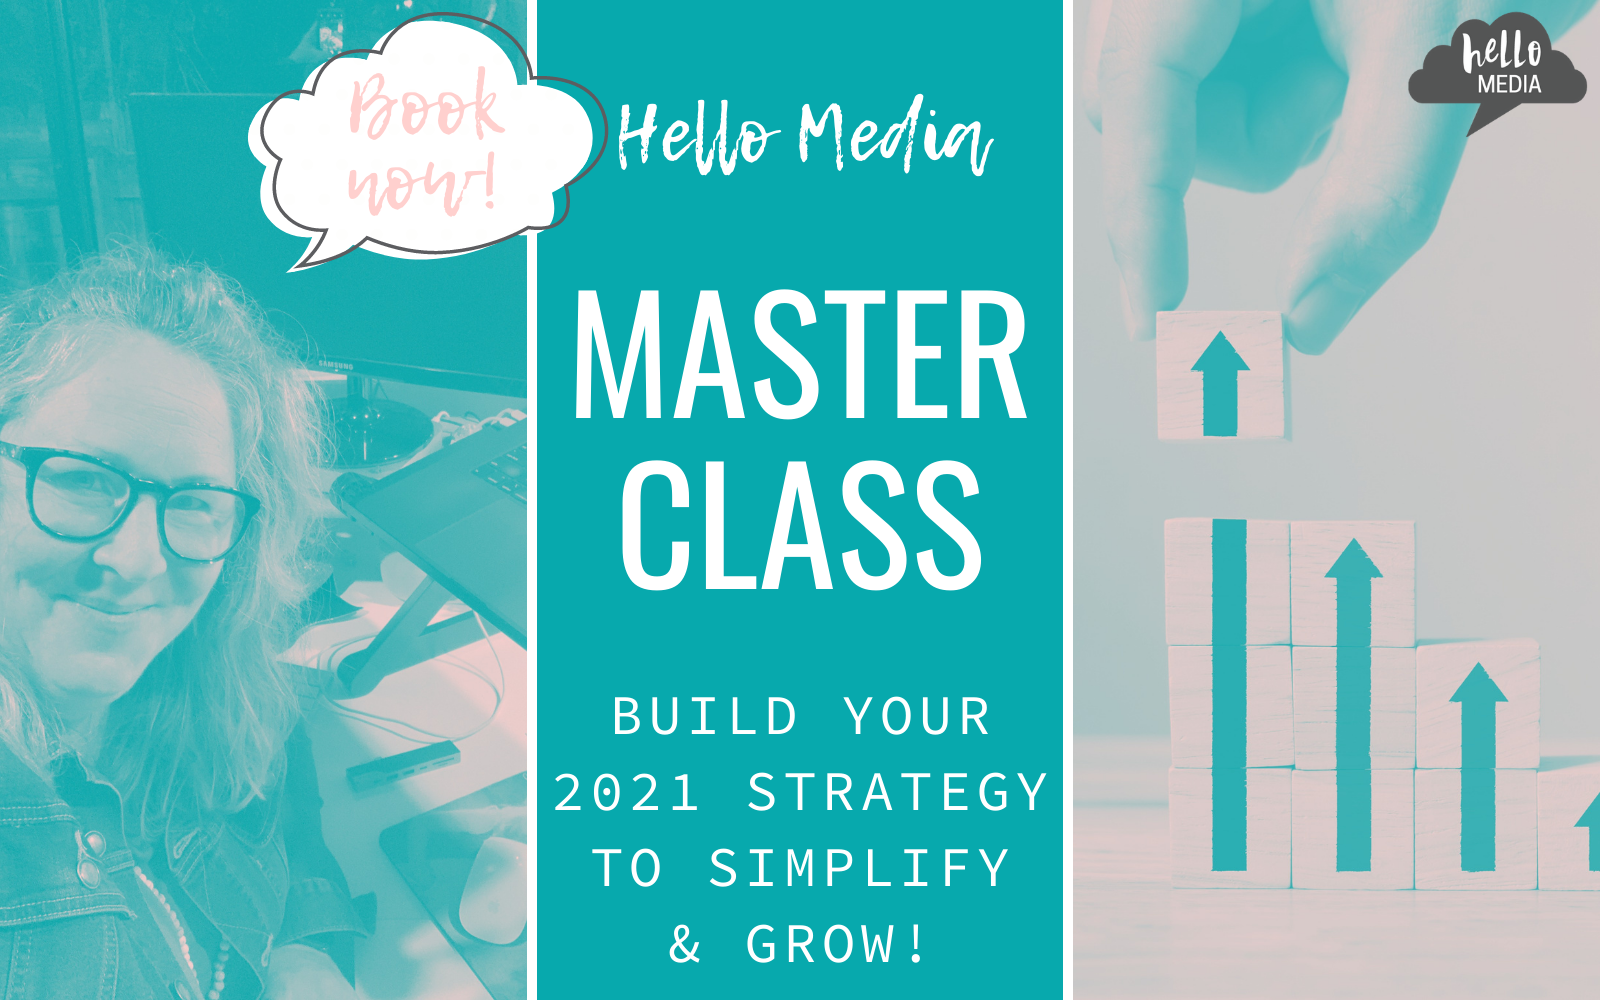 prepare your social media strategy for 2021 build and grow